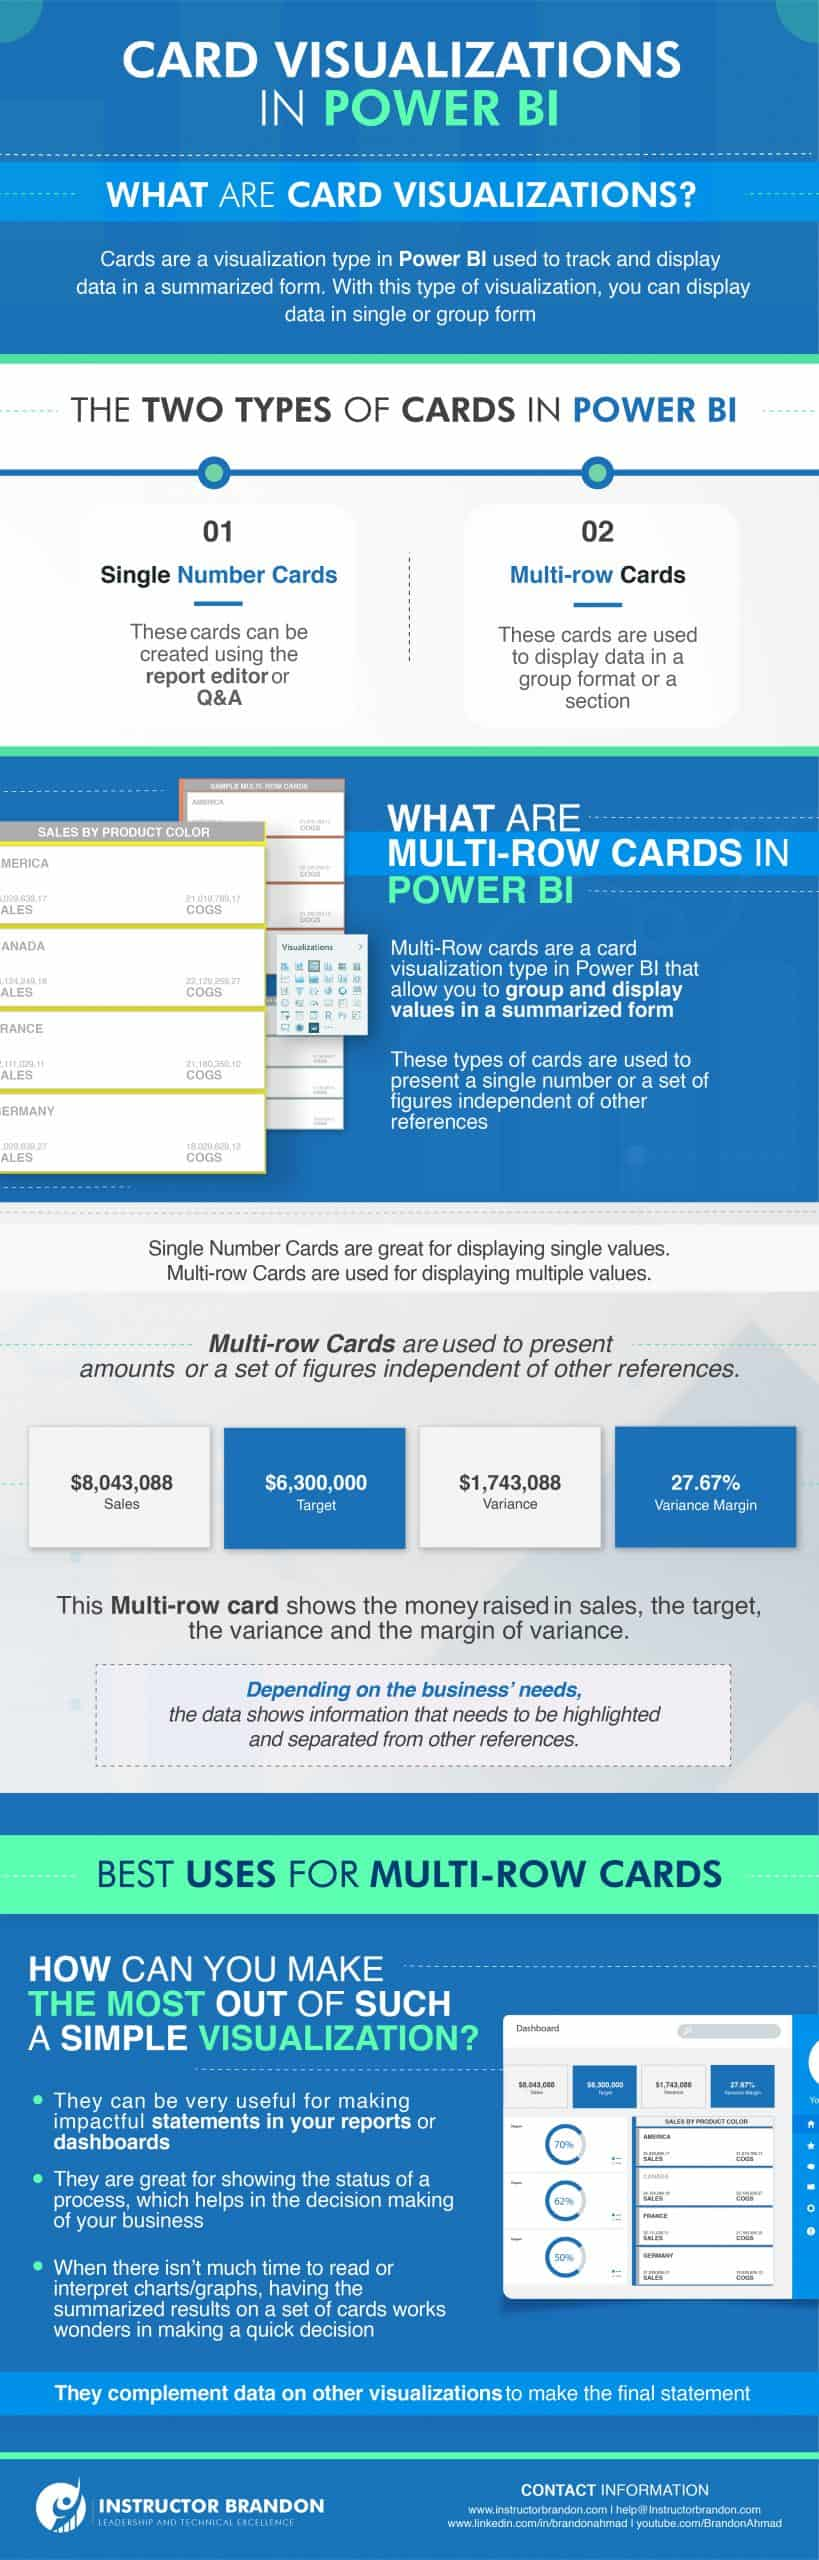 Power BI Data Visualization Best Practices Part 6 of 15: Multi-Row Cards